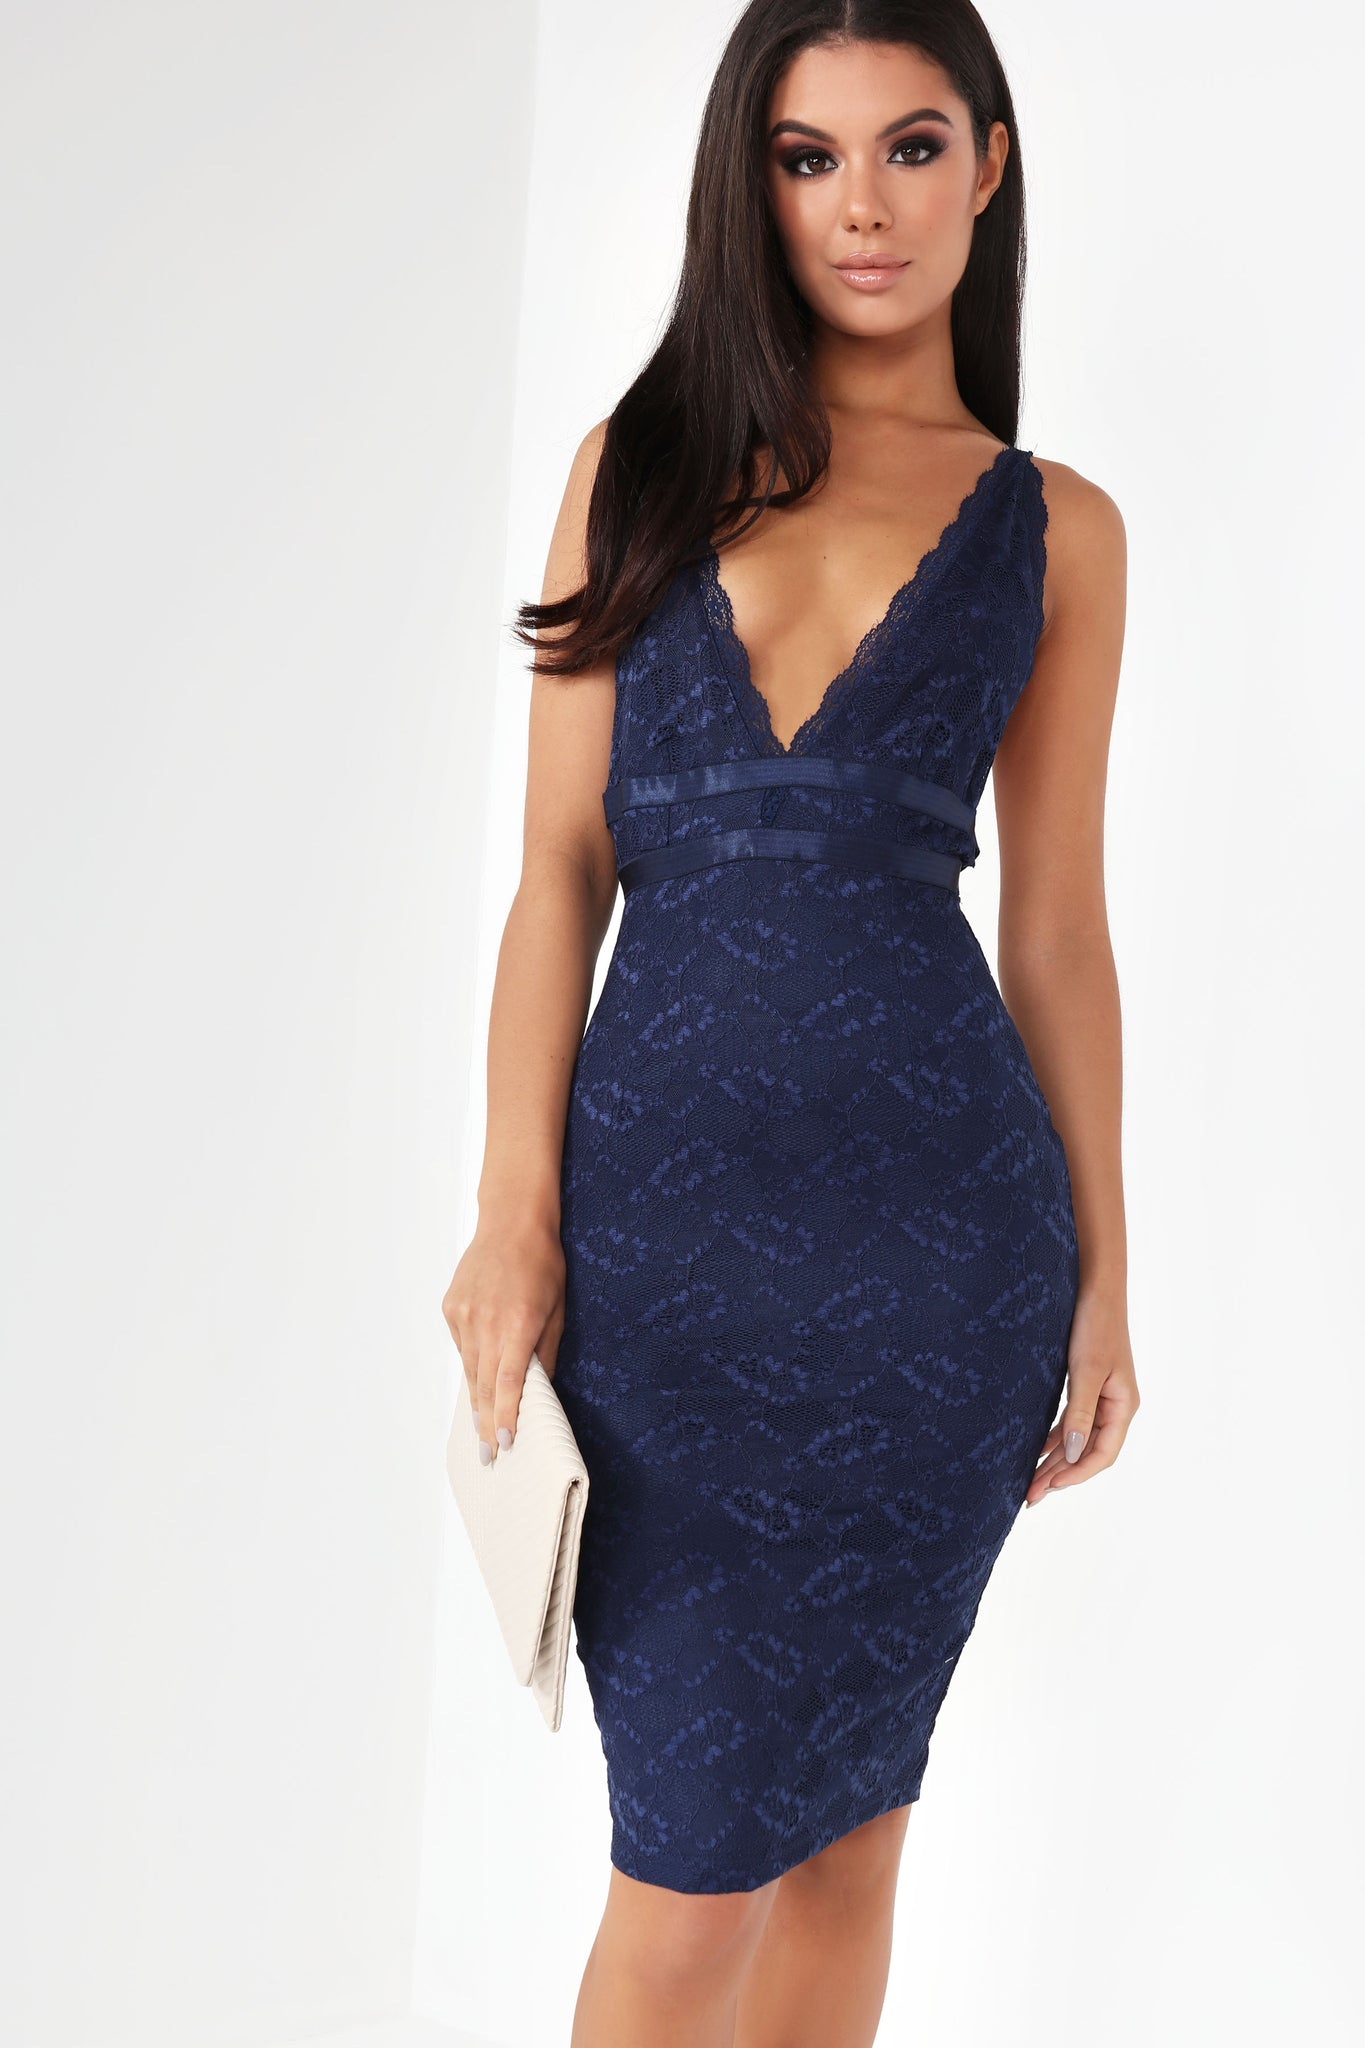 Kori Navy Lace Dress Tendencies Caps Pop Previous